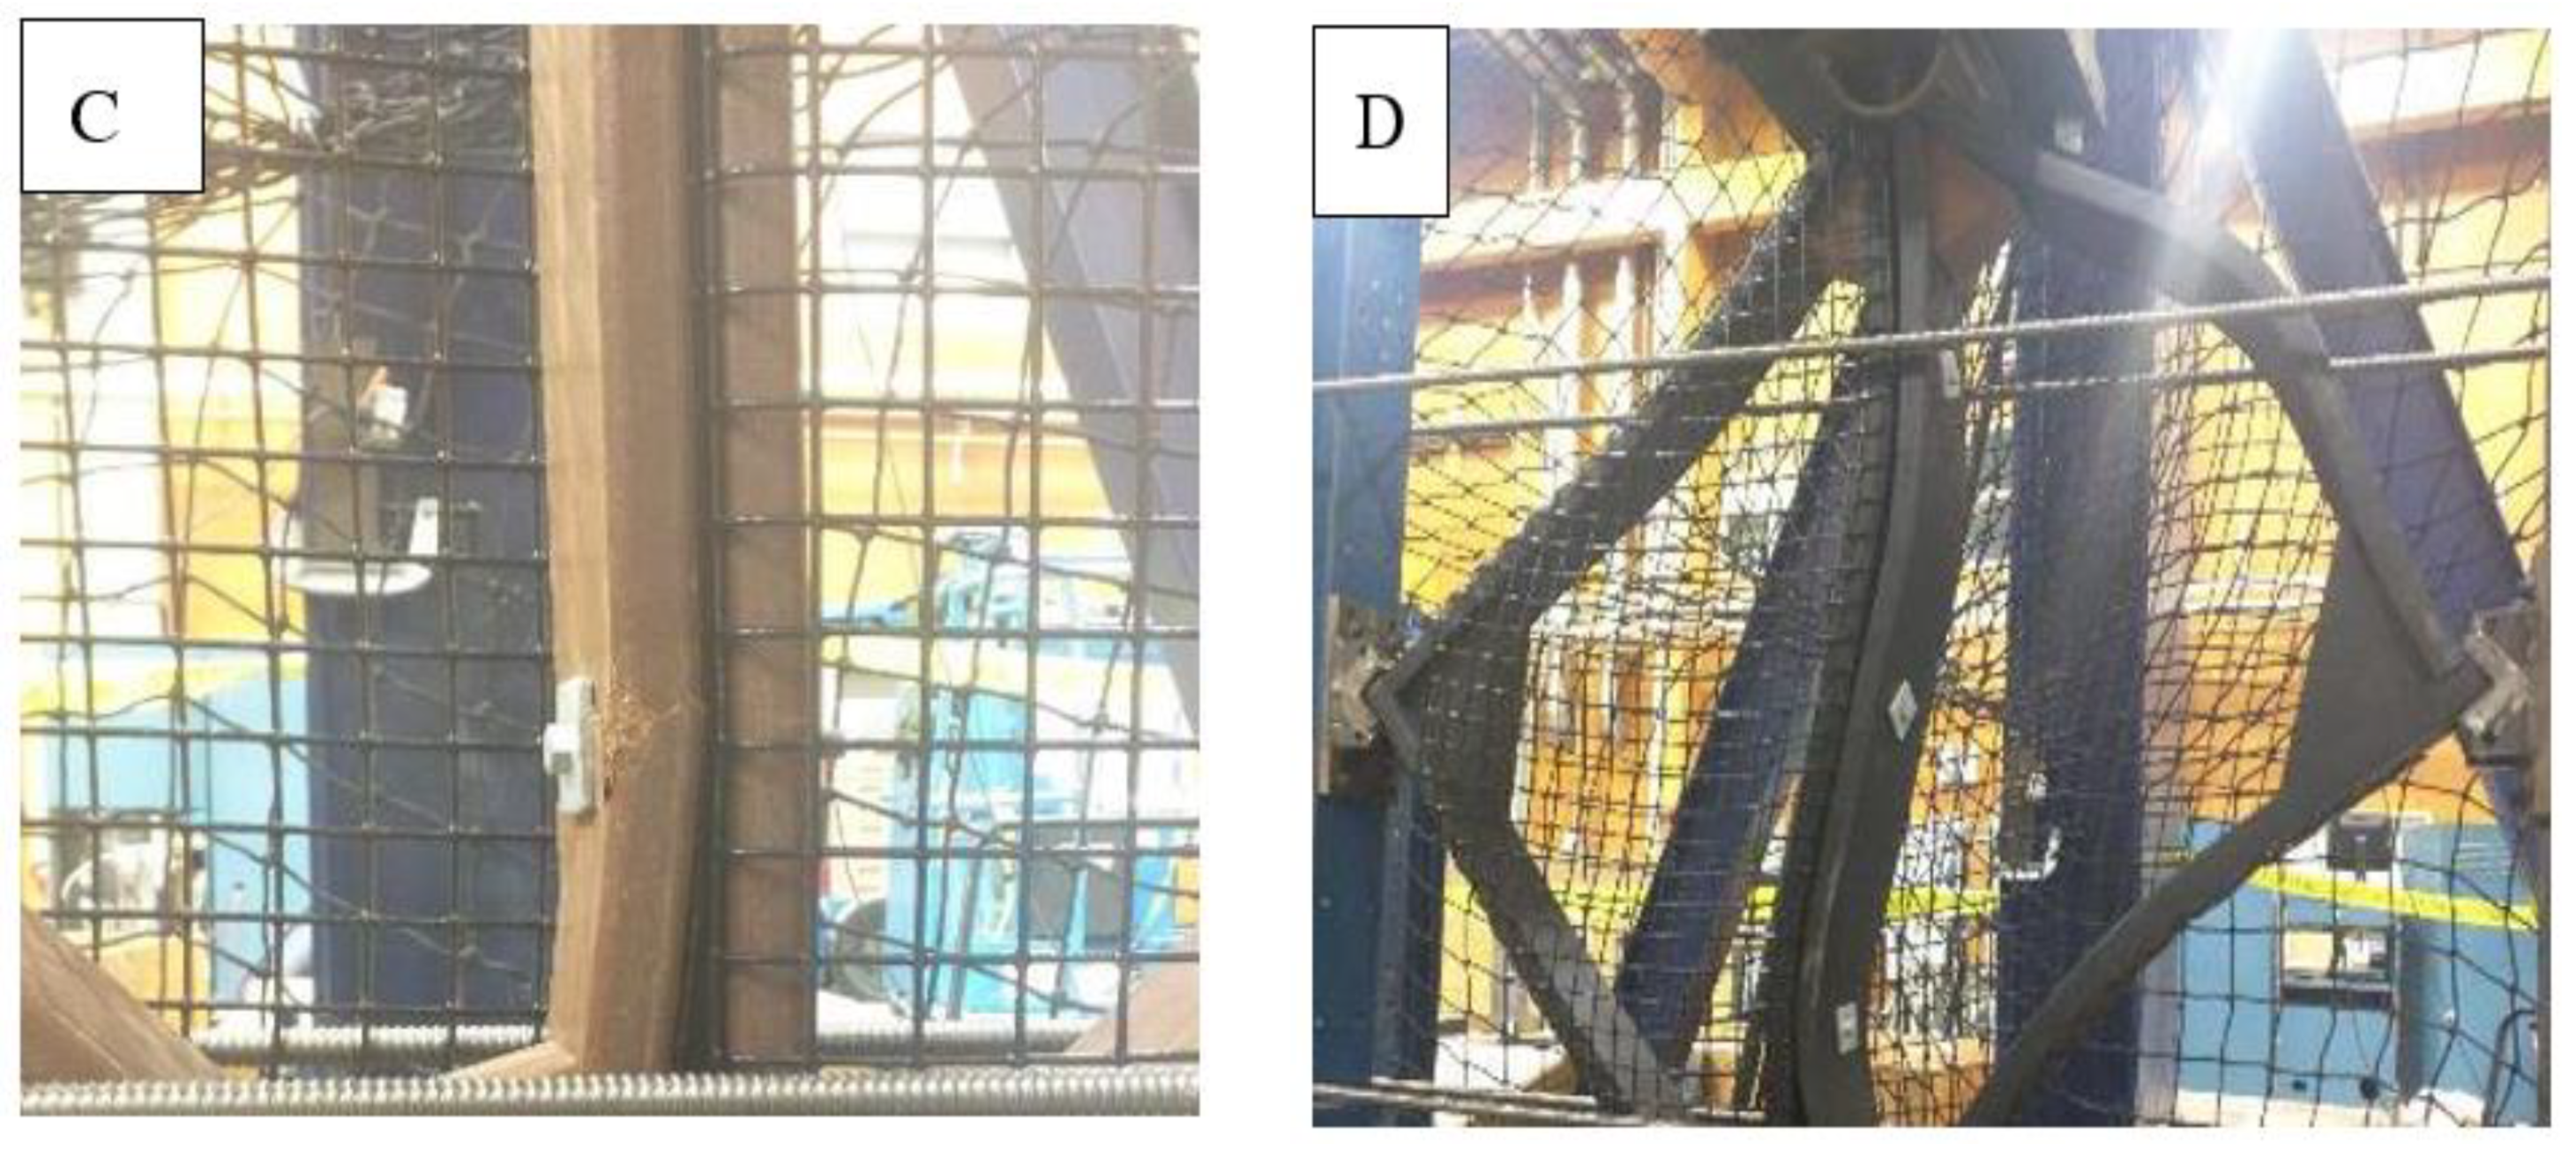 Polymers Free Full Text Structural Performance Of Hdpe And Wpc Lumber Components Used In Aquacultural Geodesic Spherical Cages Html